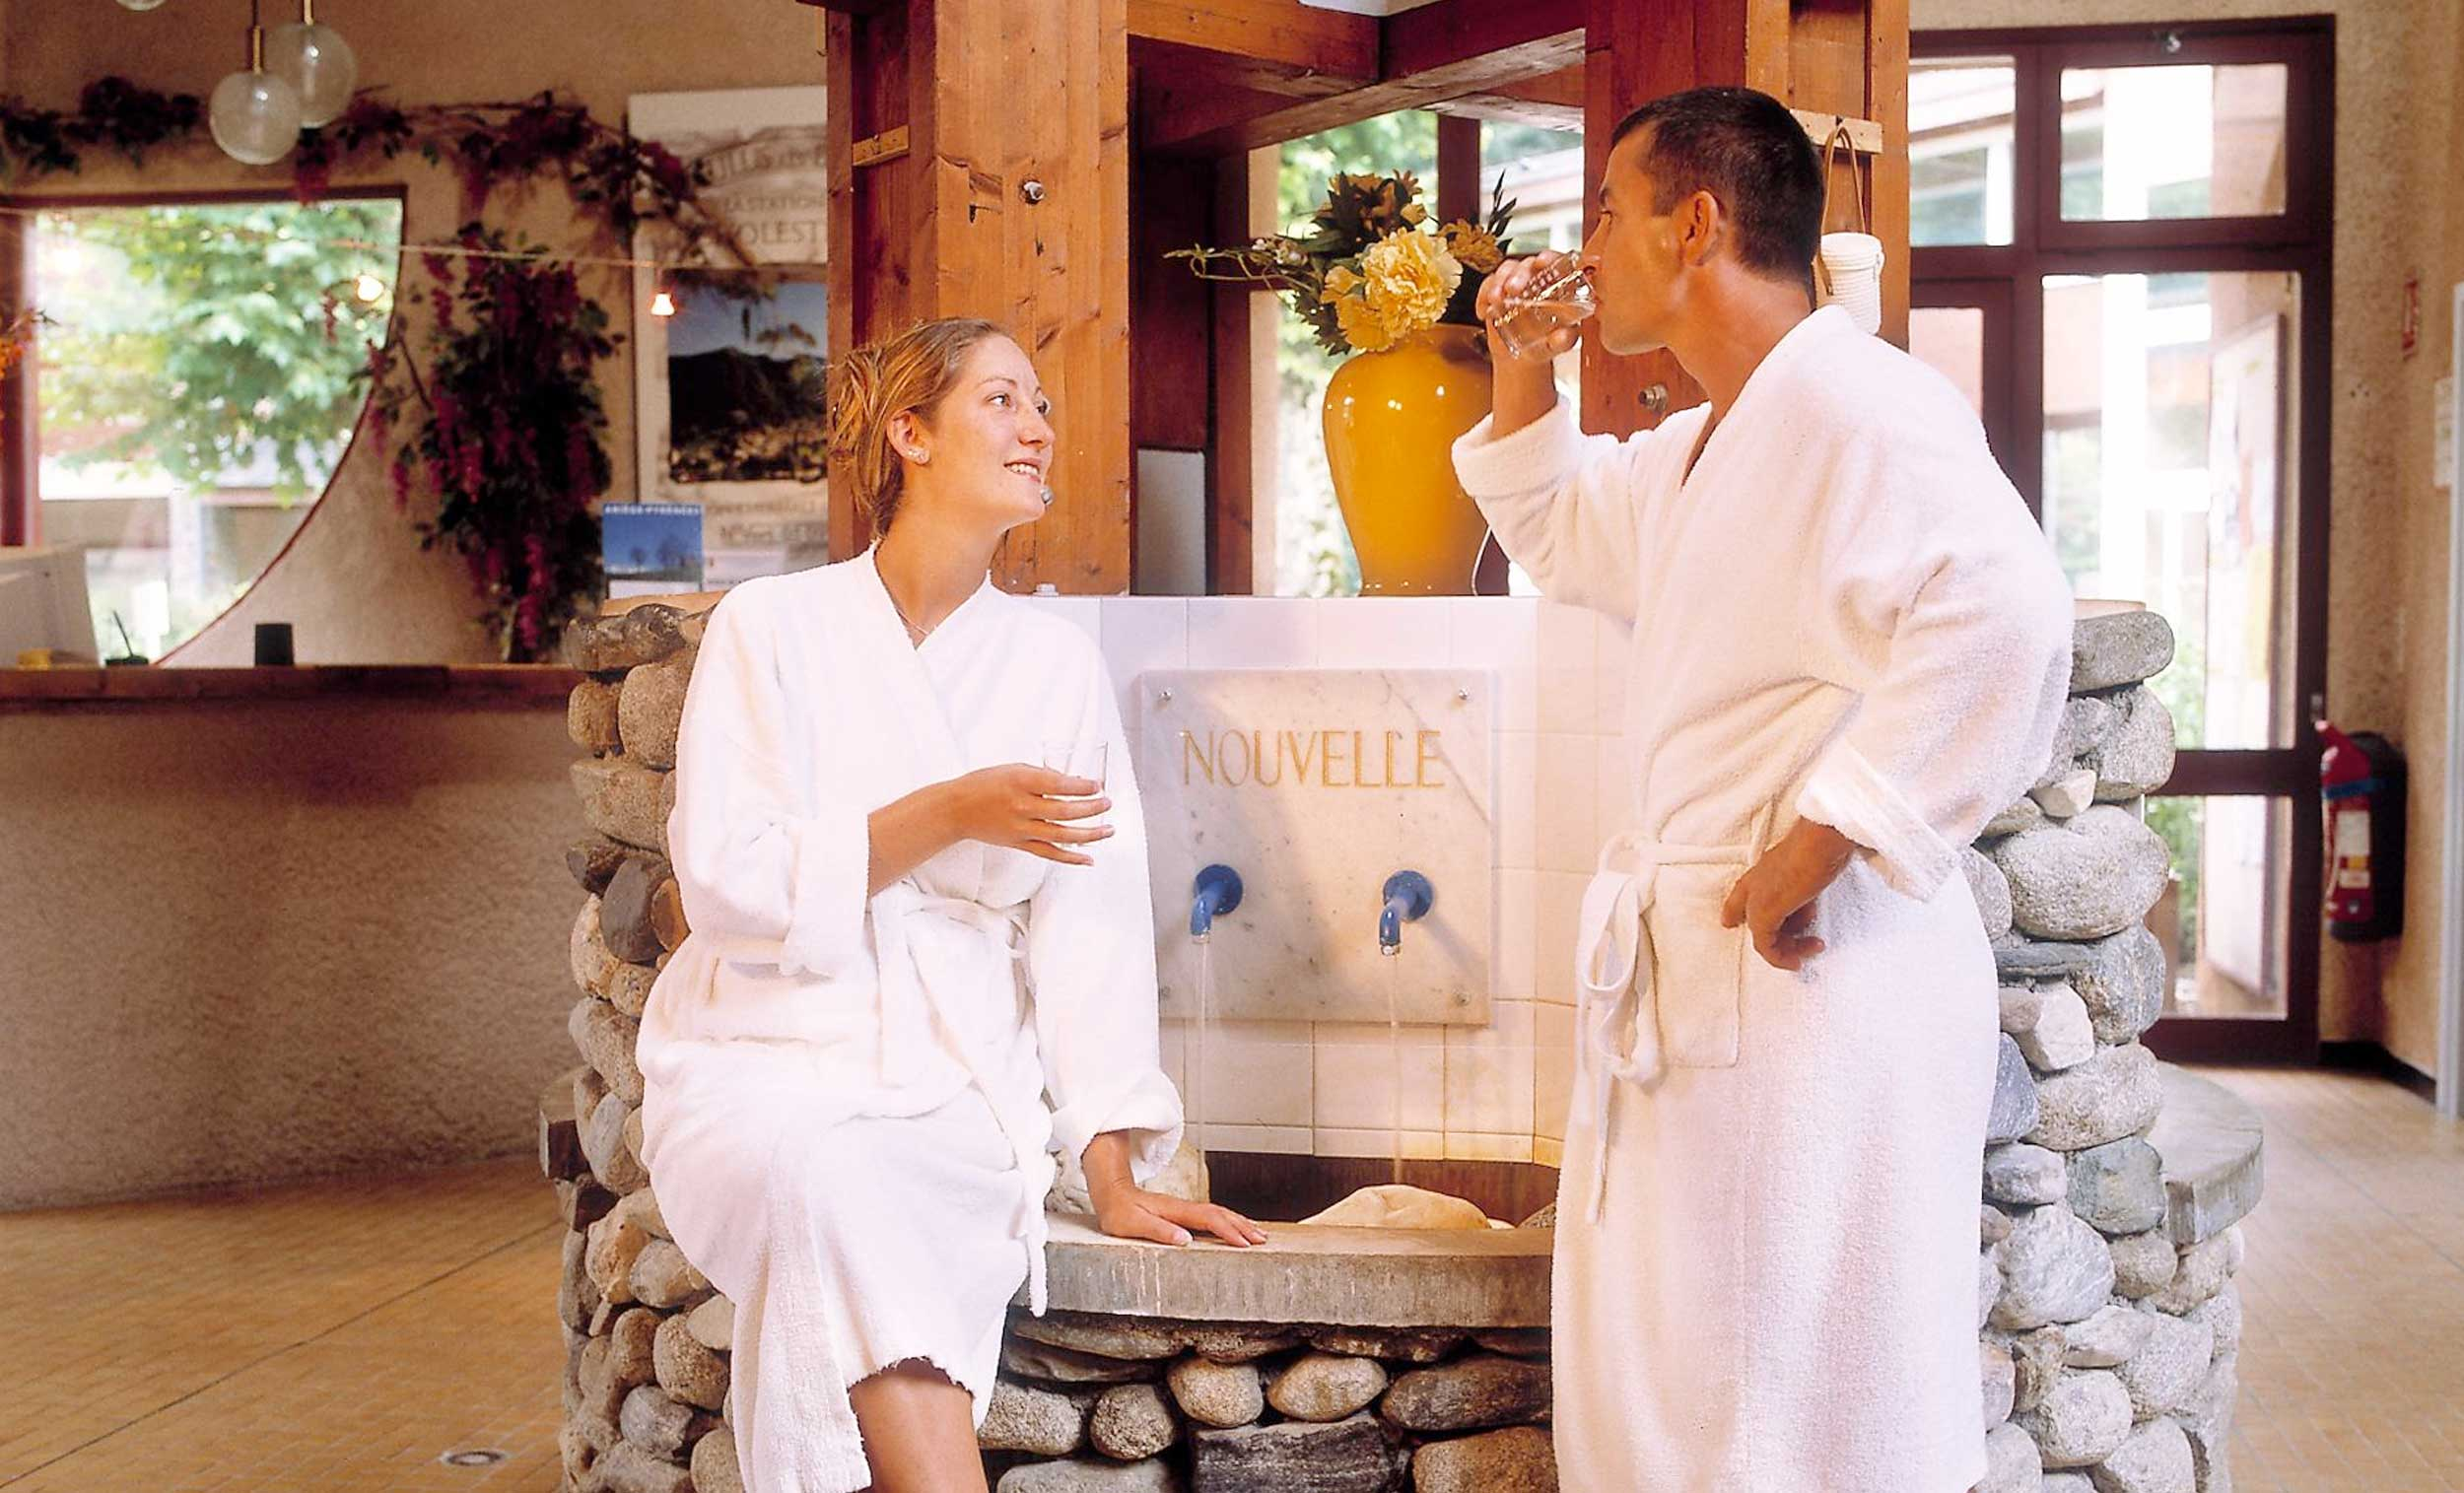 Thermes aulus les bains thermalinfos for Thermes bains les bains